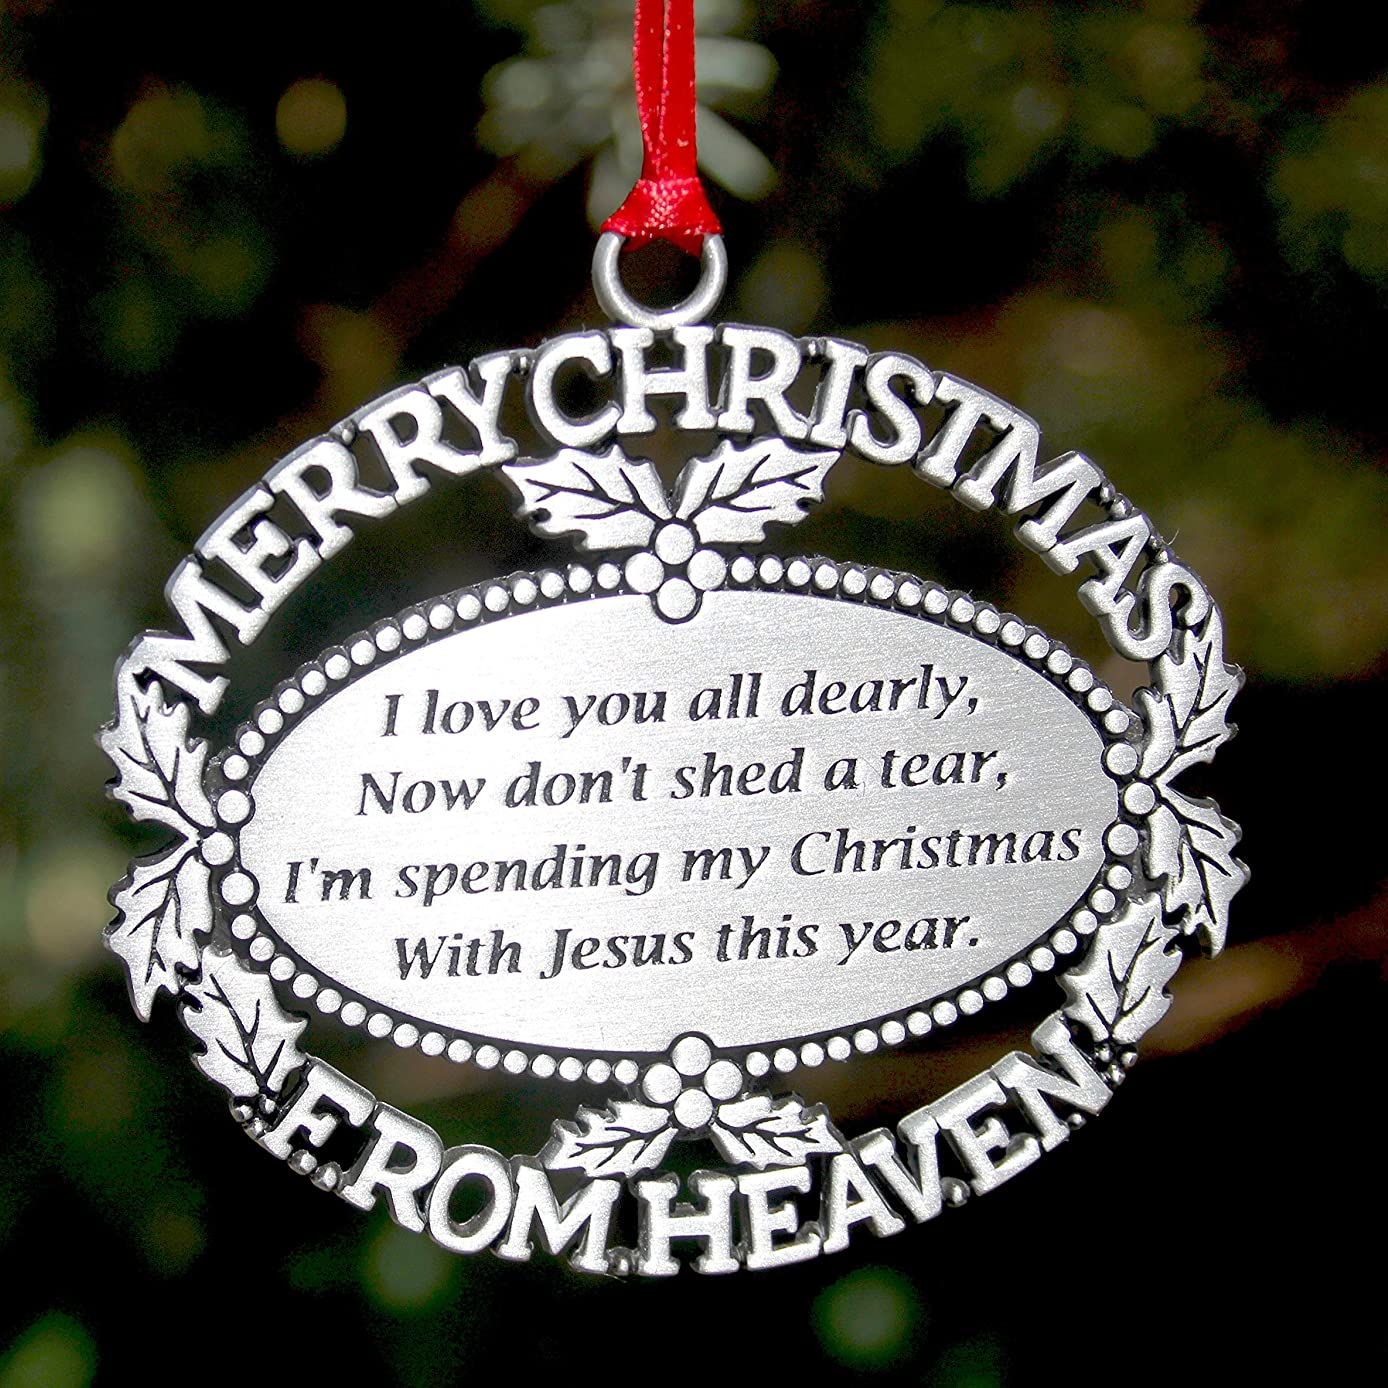 💘Christmas Sale🎄Merry Christmas From Heaven 🎄Ornament With Gifts Box 🎁 FREE Bookmark 🎁